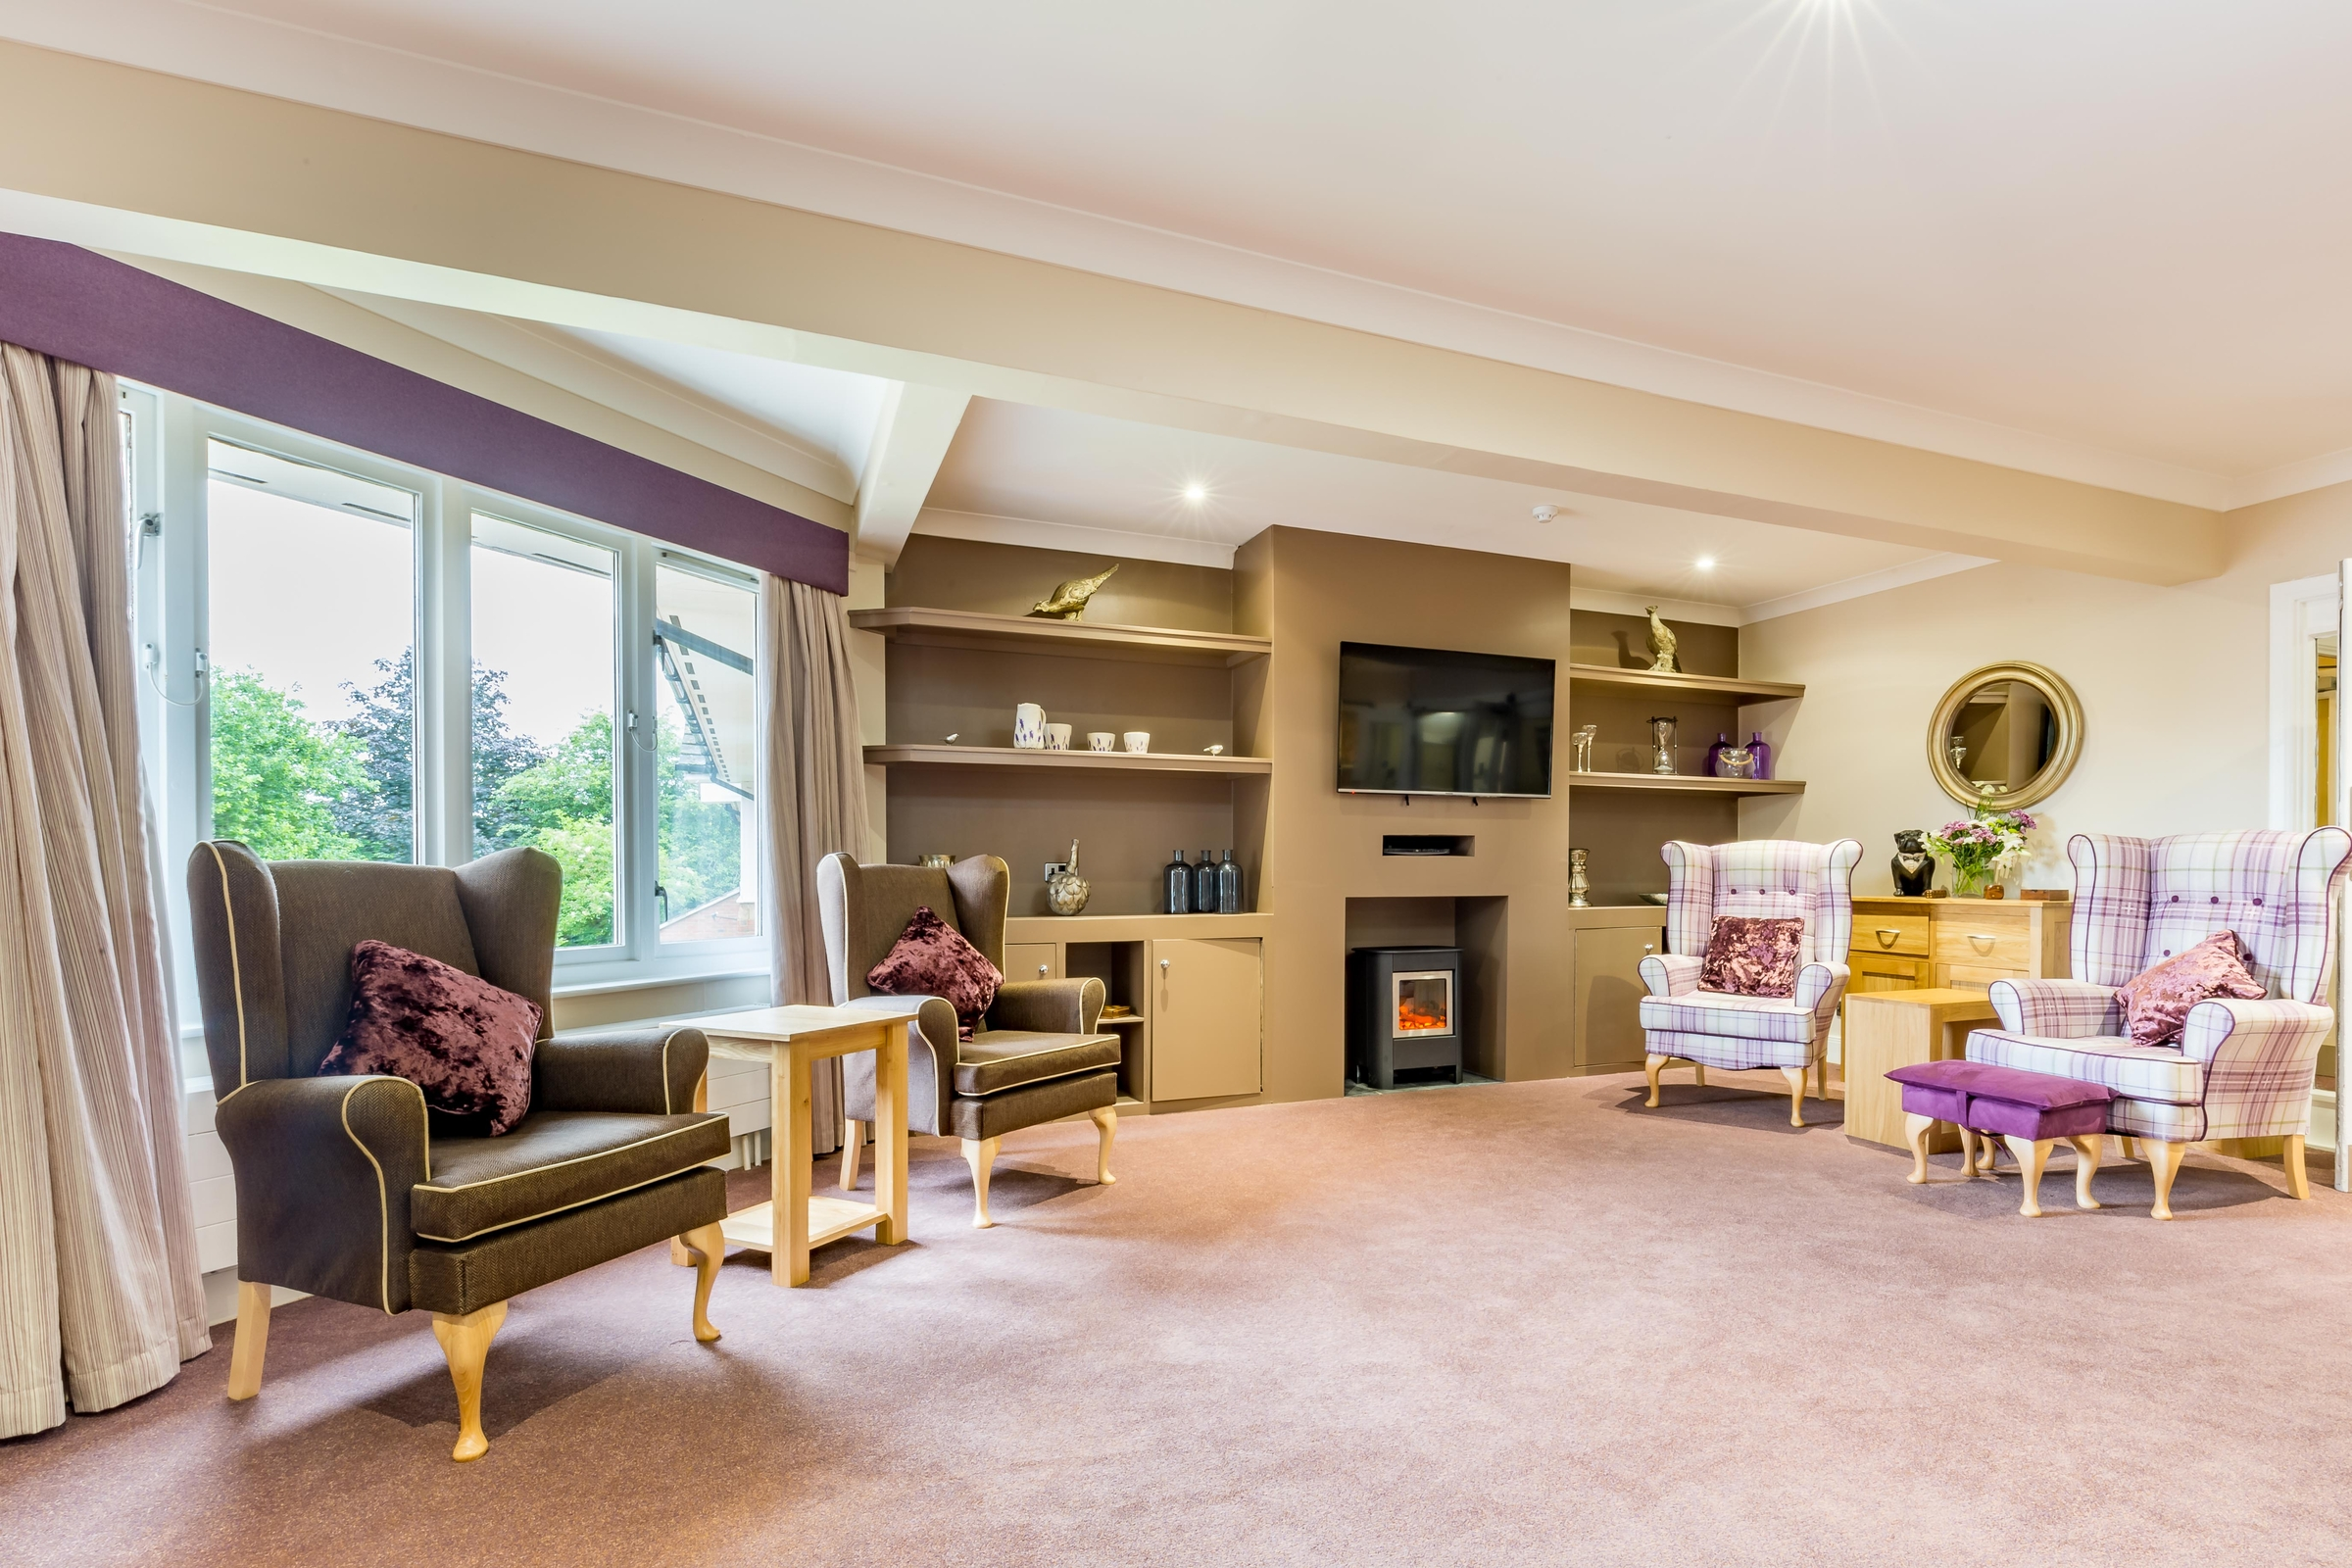 West Oak Care Home Wokingham